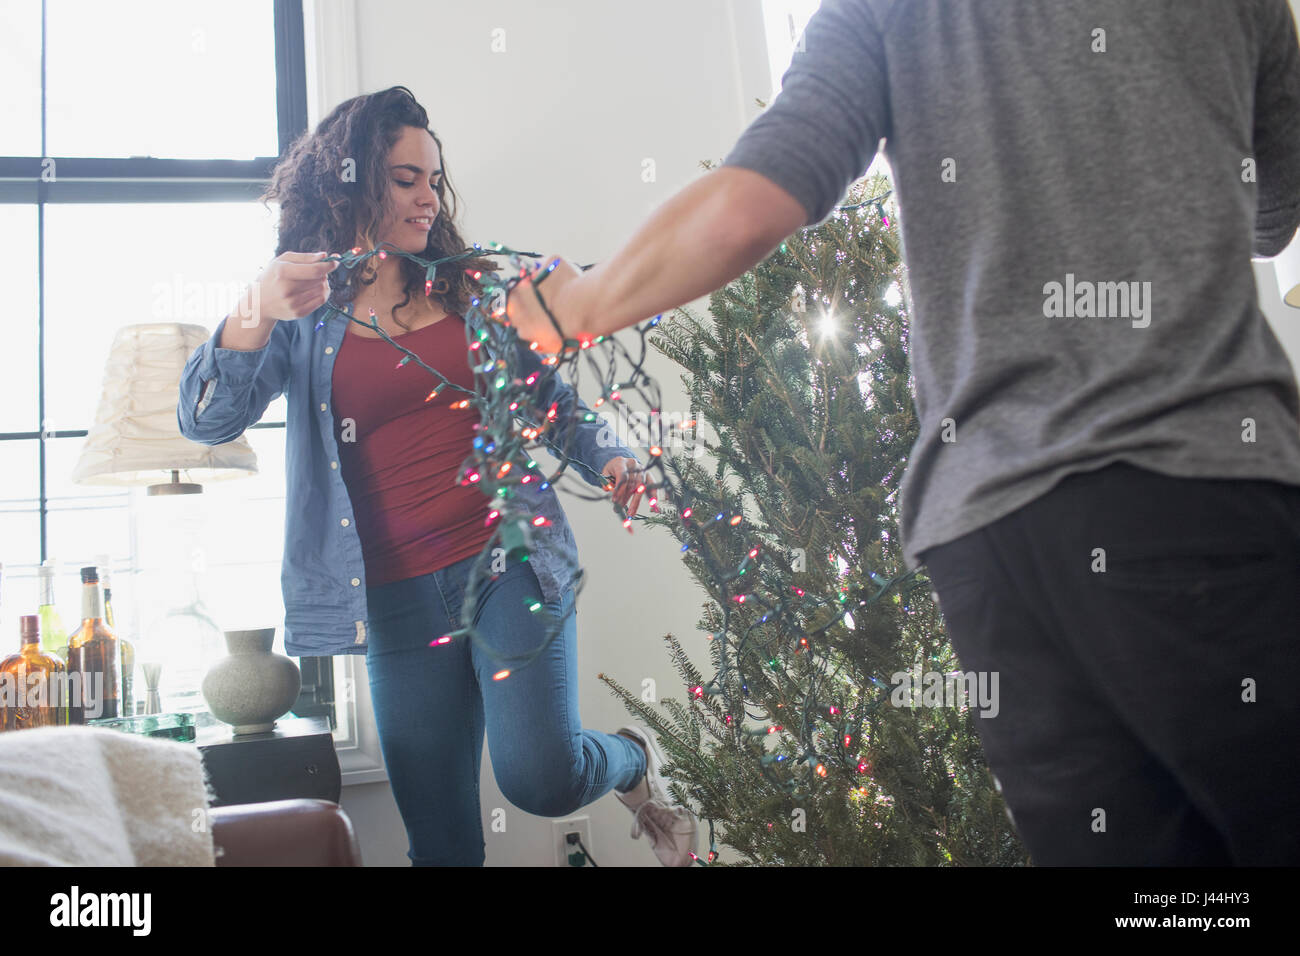 Une jeune femme et l'homme decorating a Christmas Tree Photo Stock